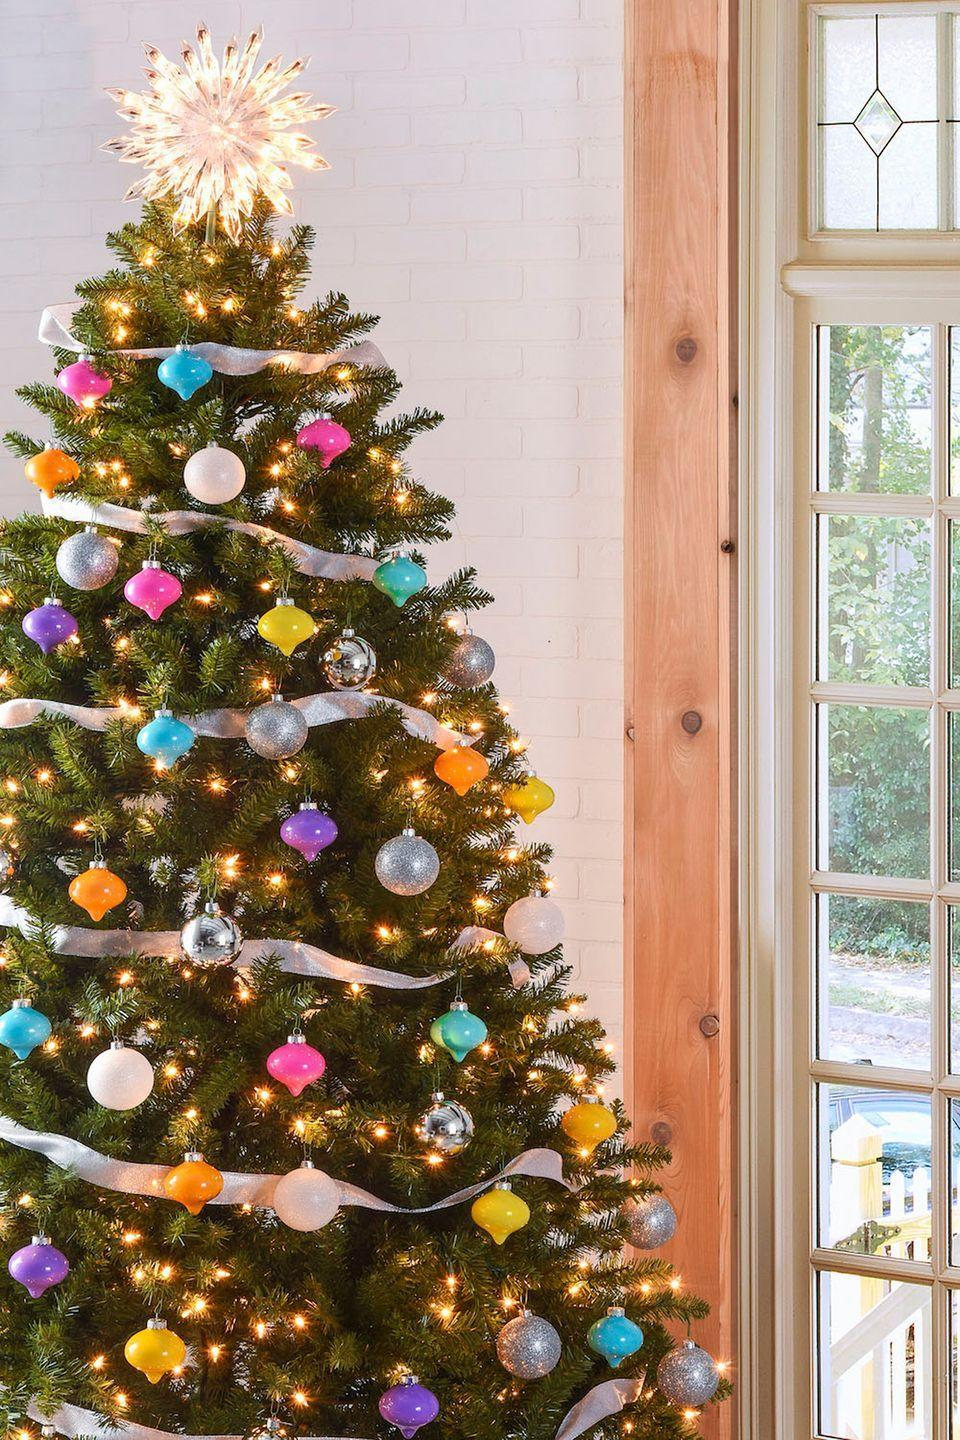 """<p>Create this simple and fun candy-colored DIY look with clear ornaments from your local craft store and some acrylic paint of your choice. </p><p><strong><em>Get the tutorial at <a href=""""http://modpodgerocksblog.com/2015/11/colorful-vintage-inspired-christmas-tree.html"""" rel=""""nofollow noopener"""" target=""""_blank"""" data-ylk=""""slk:Mod Podge Rocks"""" class=""""link rapid-noclick-resp"""">Mod Podge Rocks</a>.</em></strong></p><p><a class=""""link rapid-noclick-resp"""" href=""""https://www.amazon.com/Creative-Hobbies-Ornament-3-15-Inch-Diameter/dp/B00G6RJ75A/?tag=syn-yahoo-20&ascsubtag=%5Bartid%7C10070.g.2025%5Bsrc%7Cyahoo-us"""" rel=""""nofollow noopener"""" target=""""_blank"""" data-ylk=""""slk:BUY CLEAR ORNAMENTS"""">BUY CLEAR ORNAMENTS</a> </p>"""